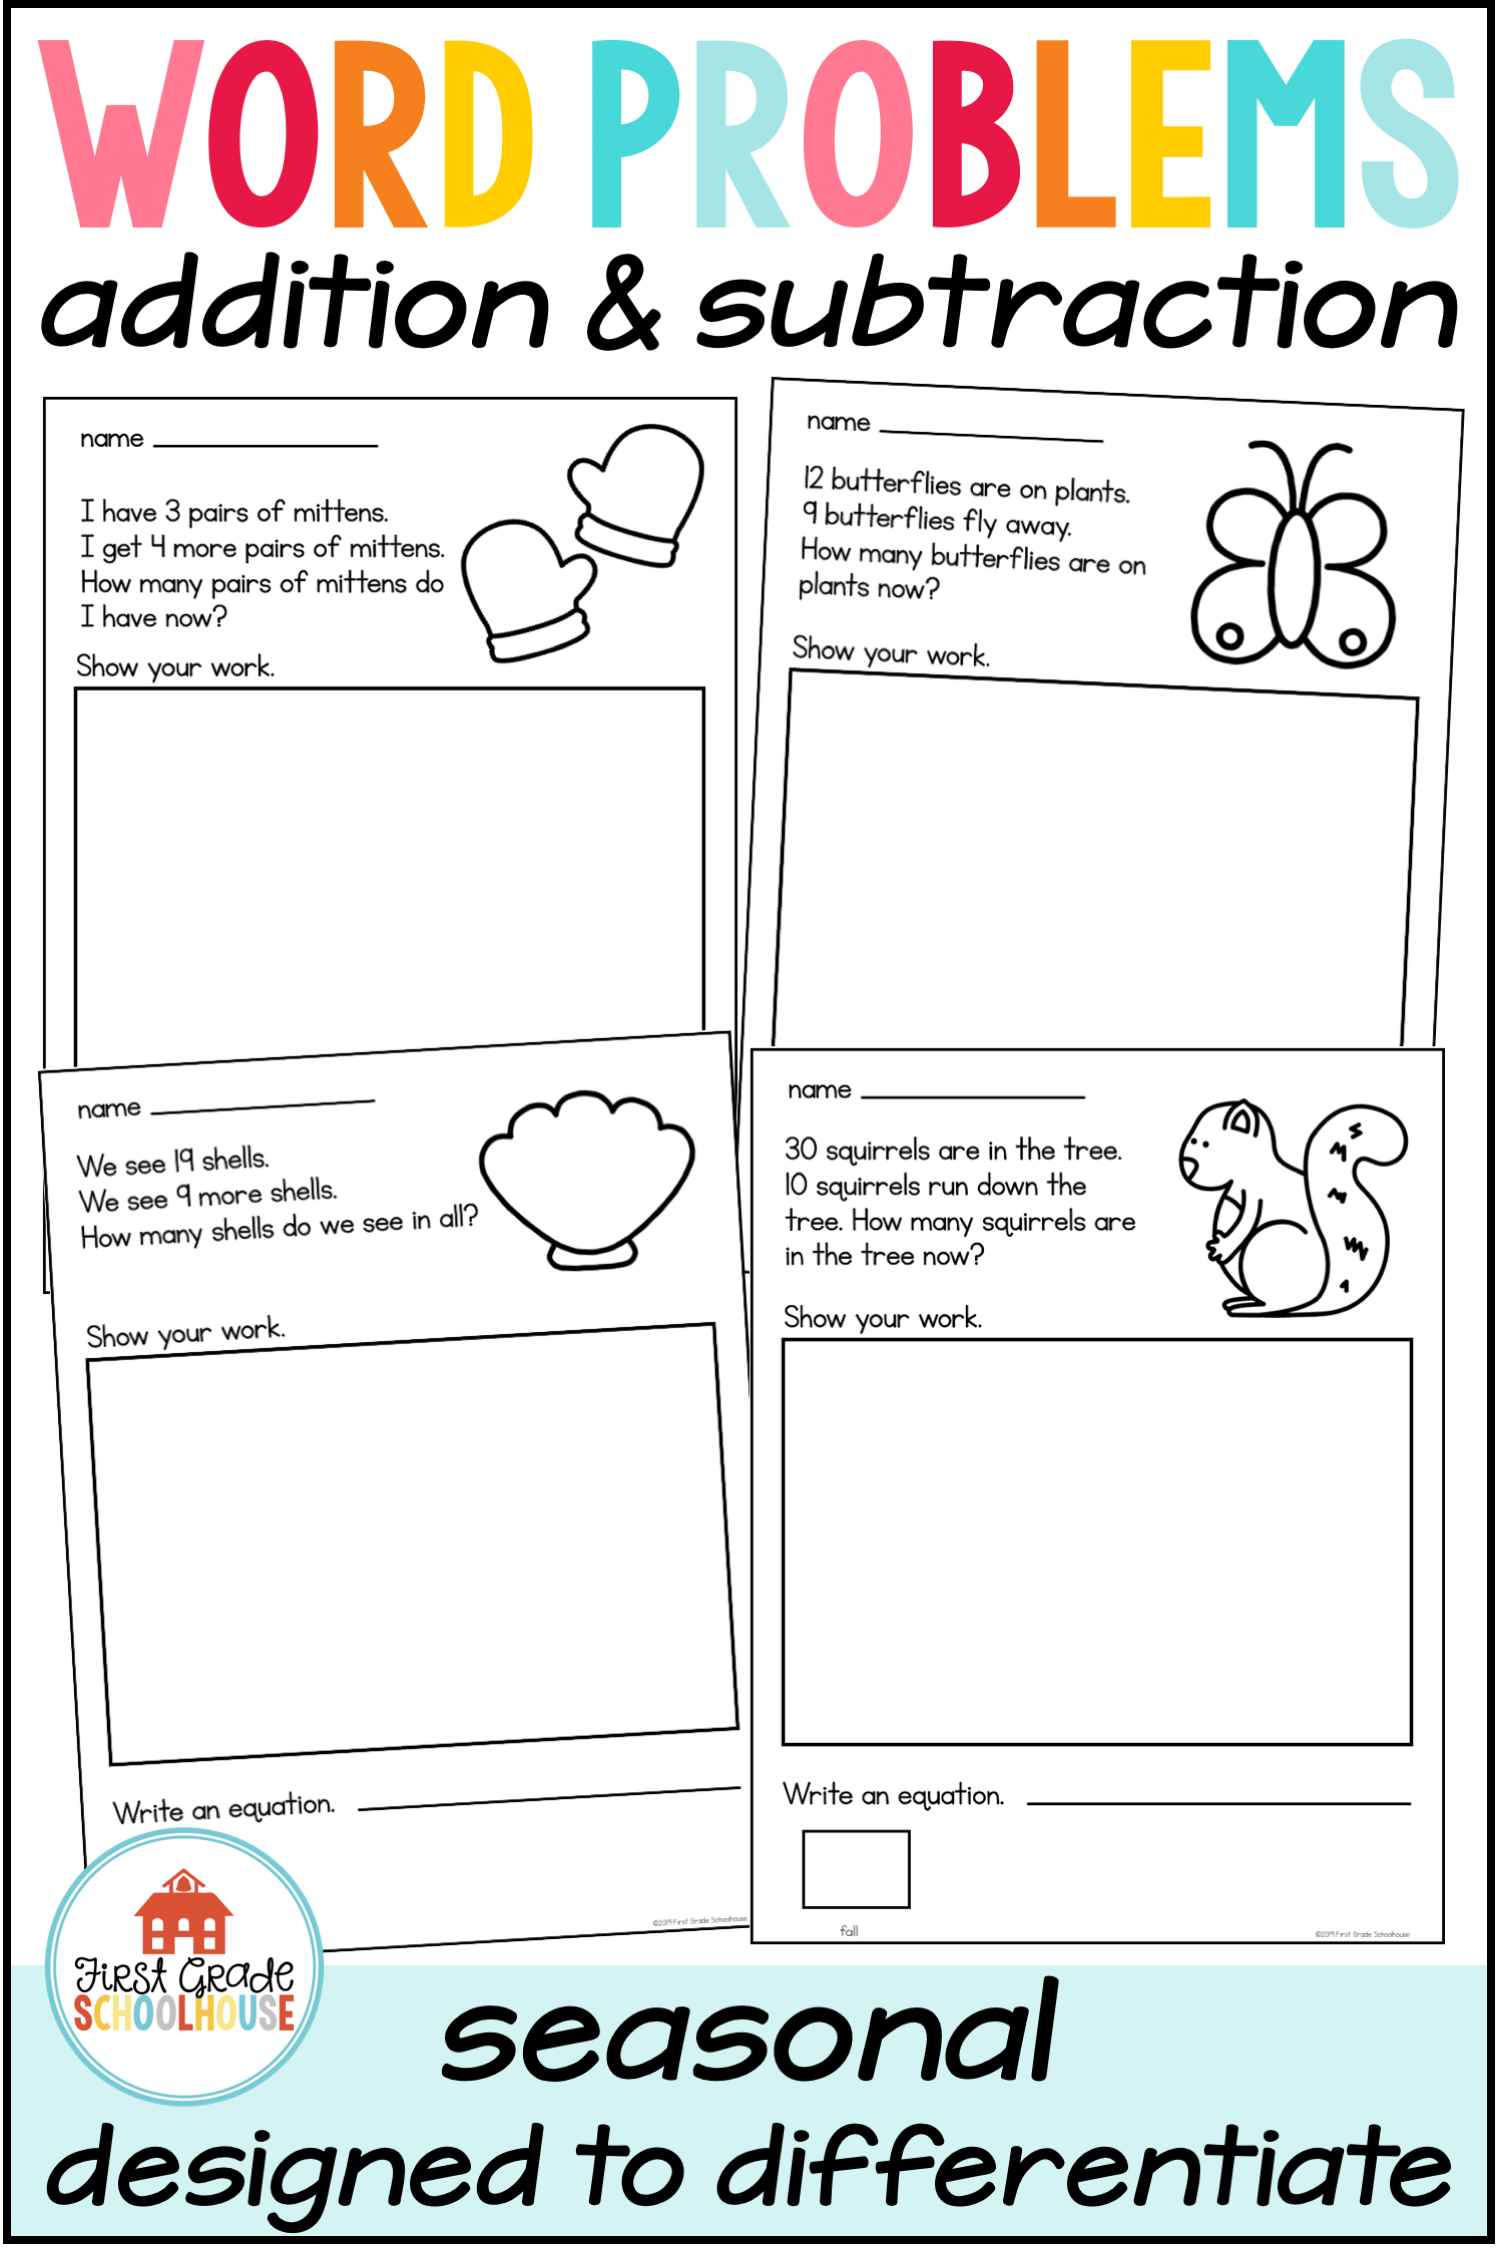 hight resolution of Word Problems Addition and Subtraction   Seasons   Preschool math worksheets